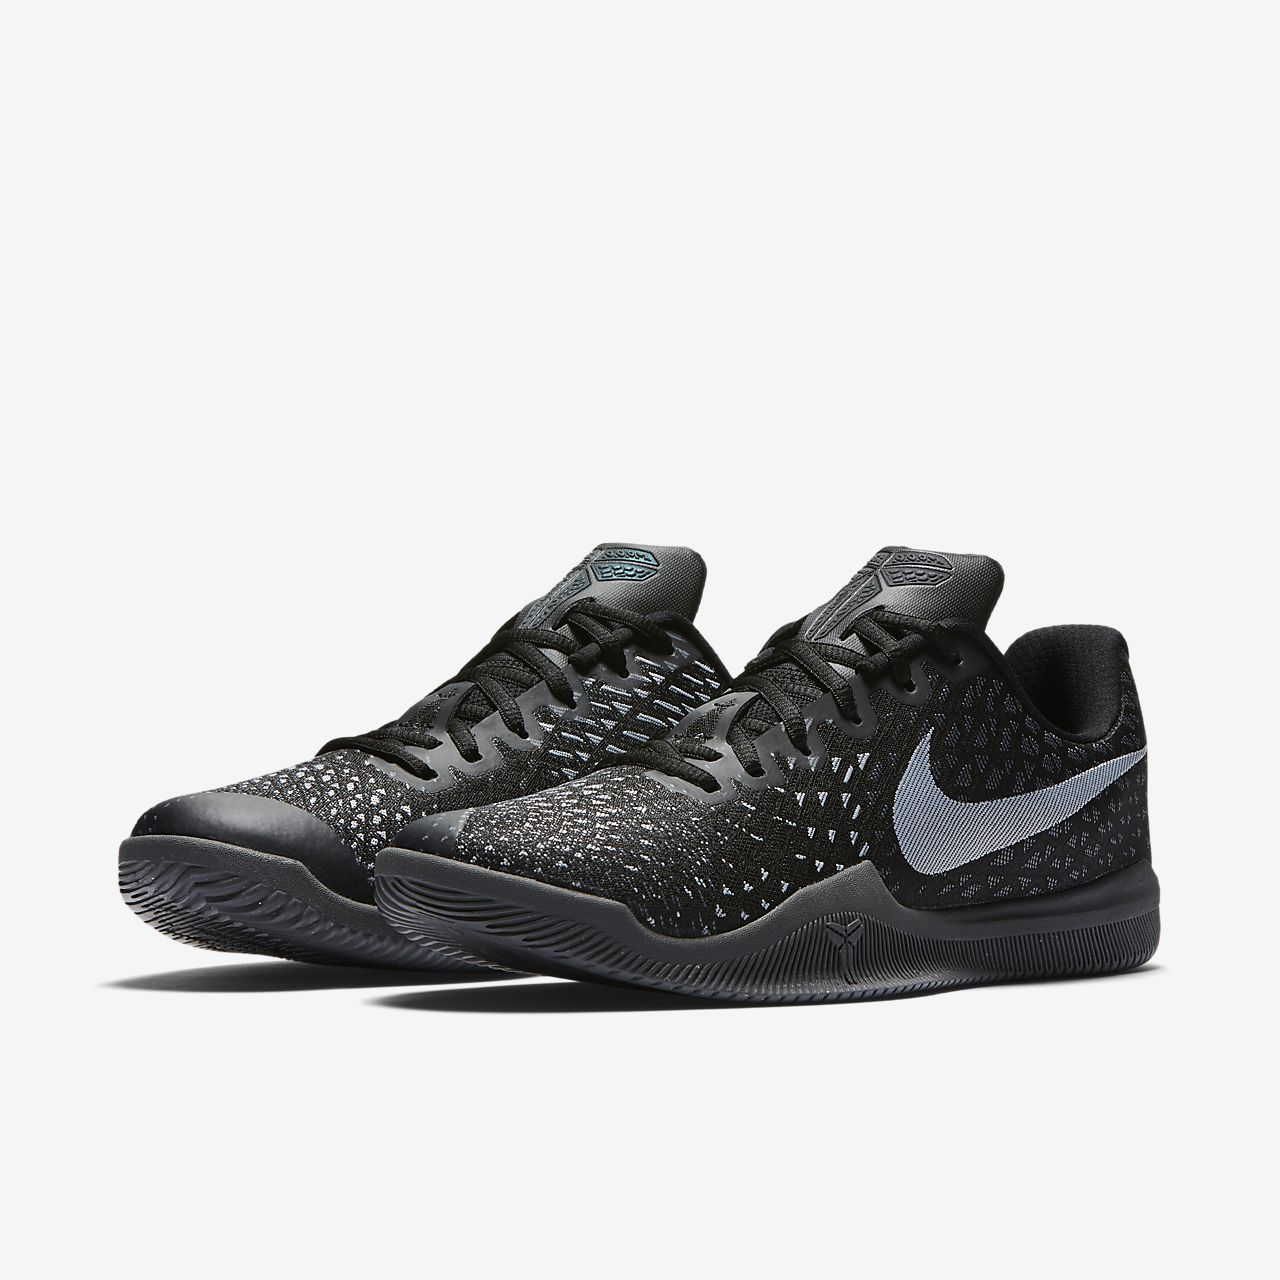 77ddef33b18 Nike Kobe Mamba Instinct Men s Basketball Shoe